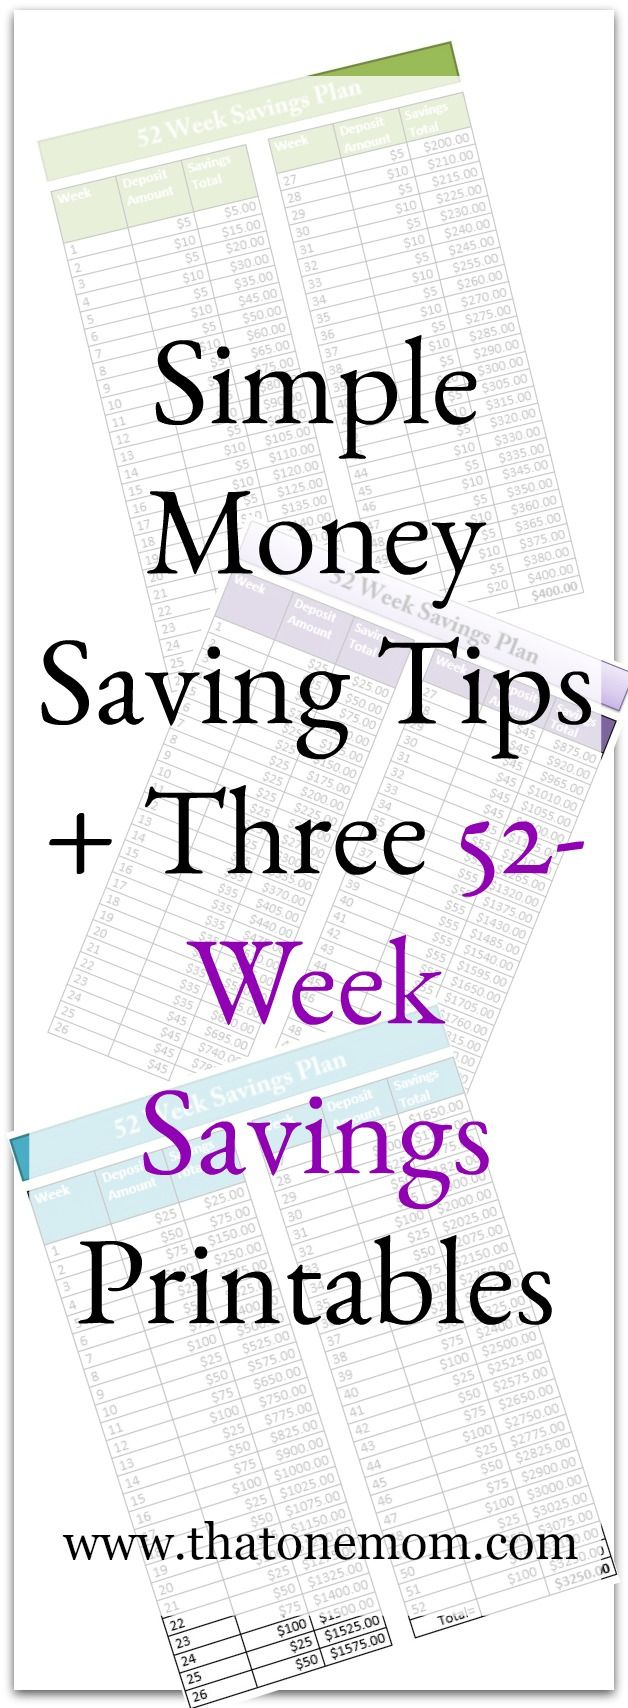 Saving money isn't always easy. Here are some simple tips to help you out, along with three different 52-Week Savings Printables! www.thatonemom.com